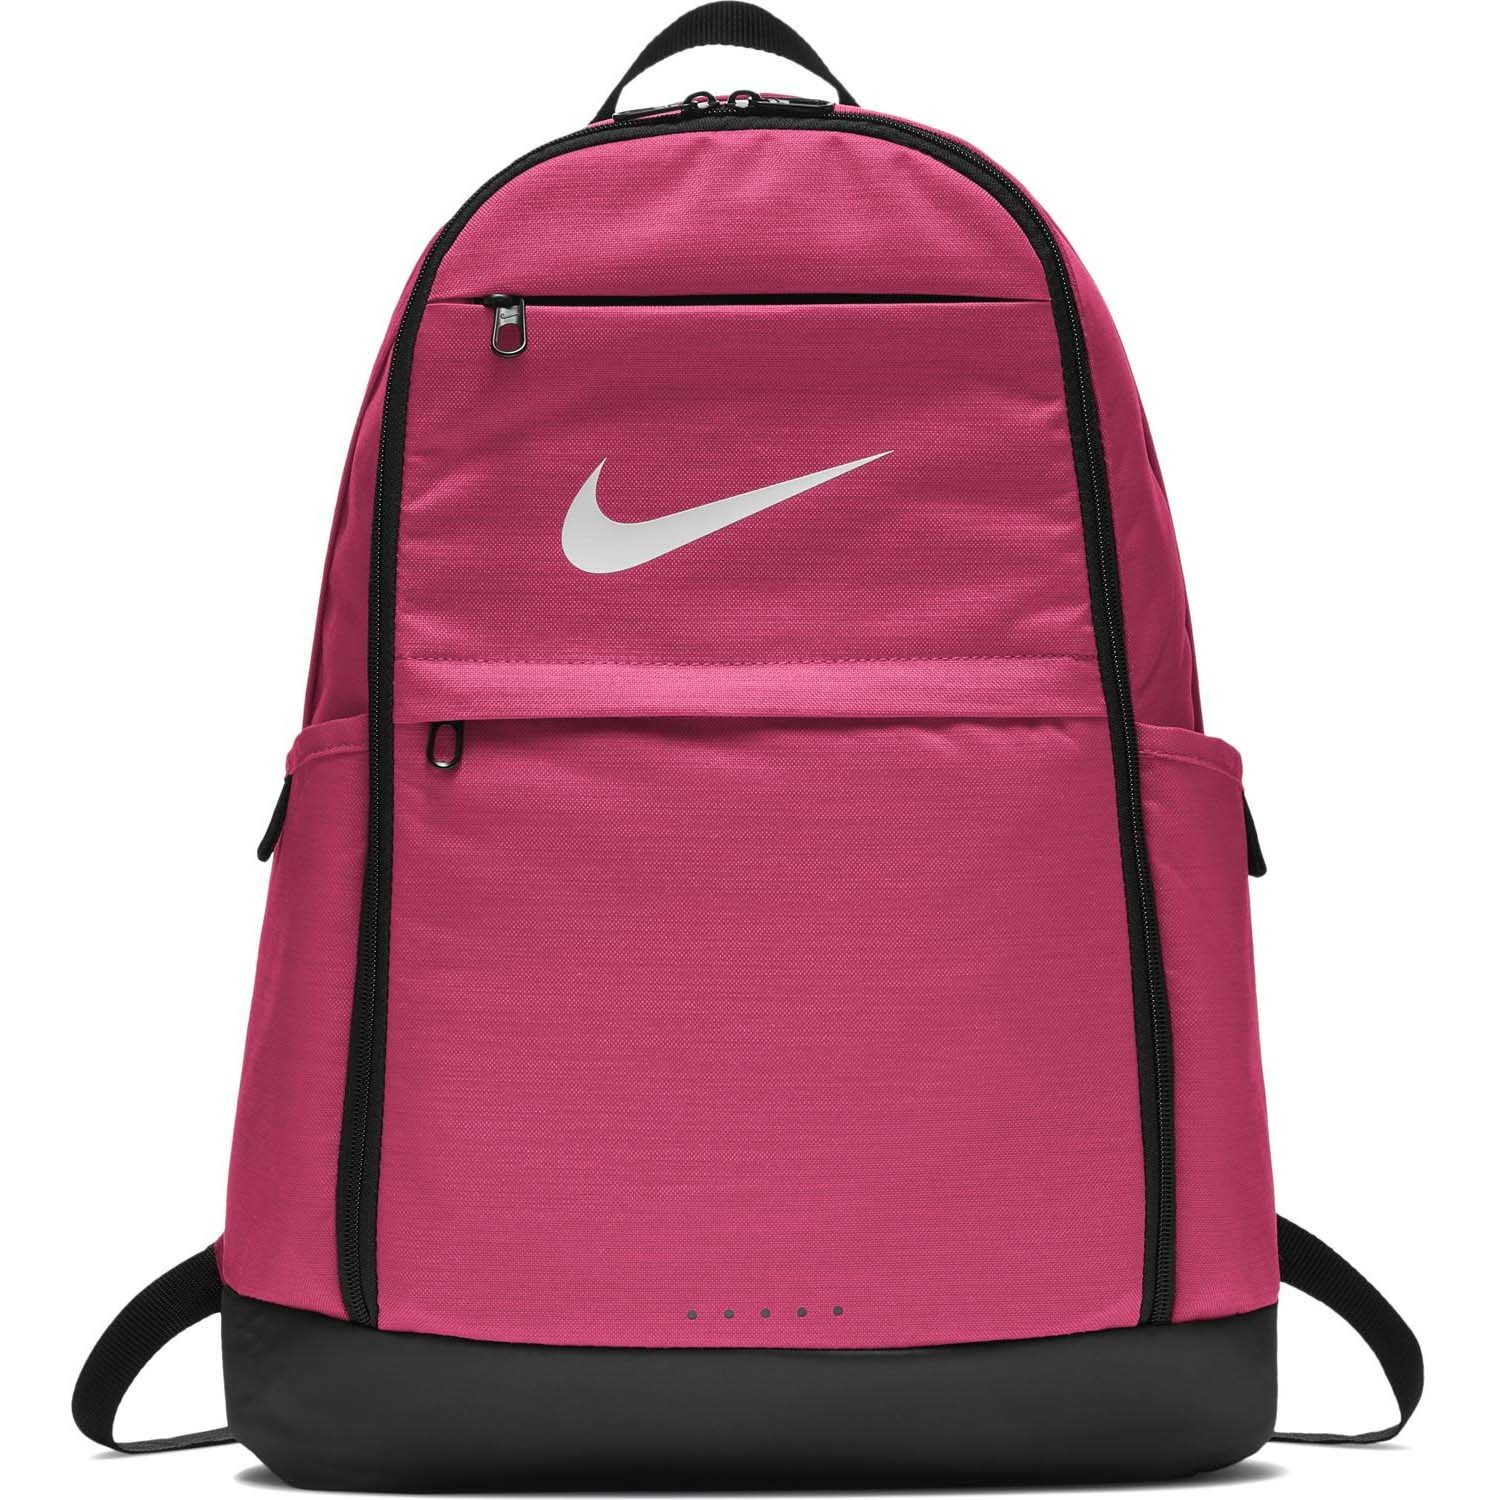 factory authentic official shop best sellers Nike Rucksack Brasilia Rush Pink/Black/Whit XL BA5892-699